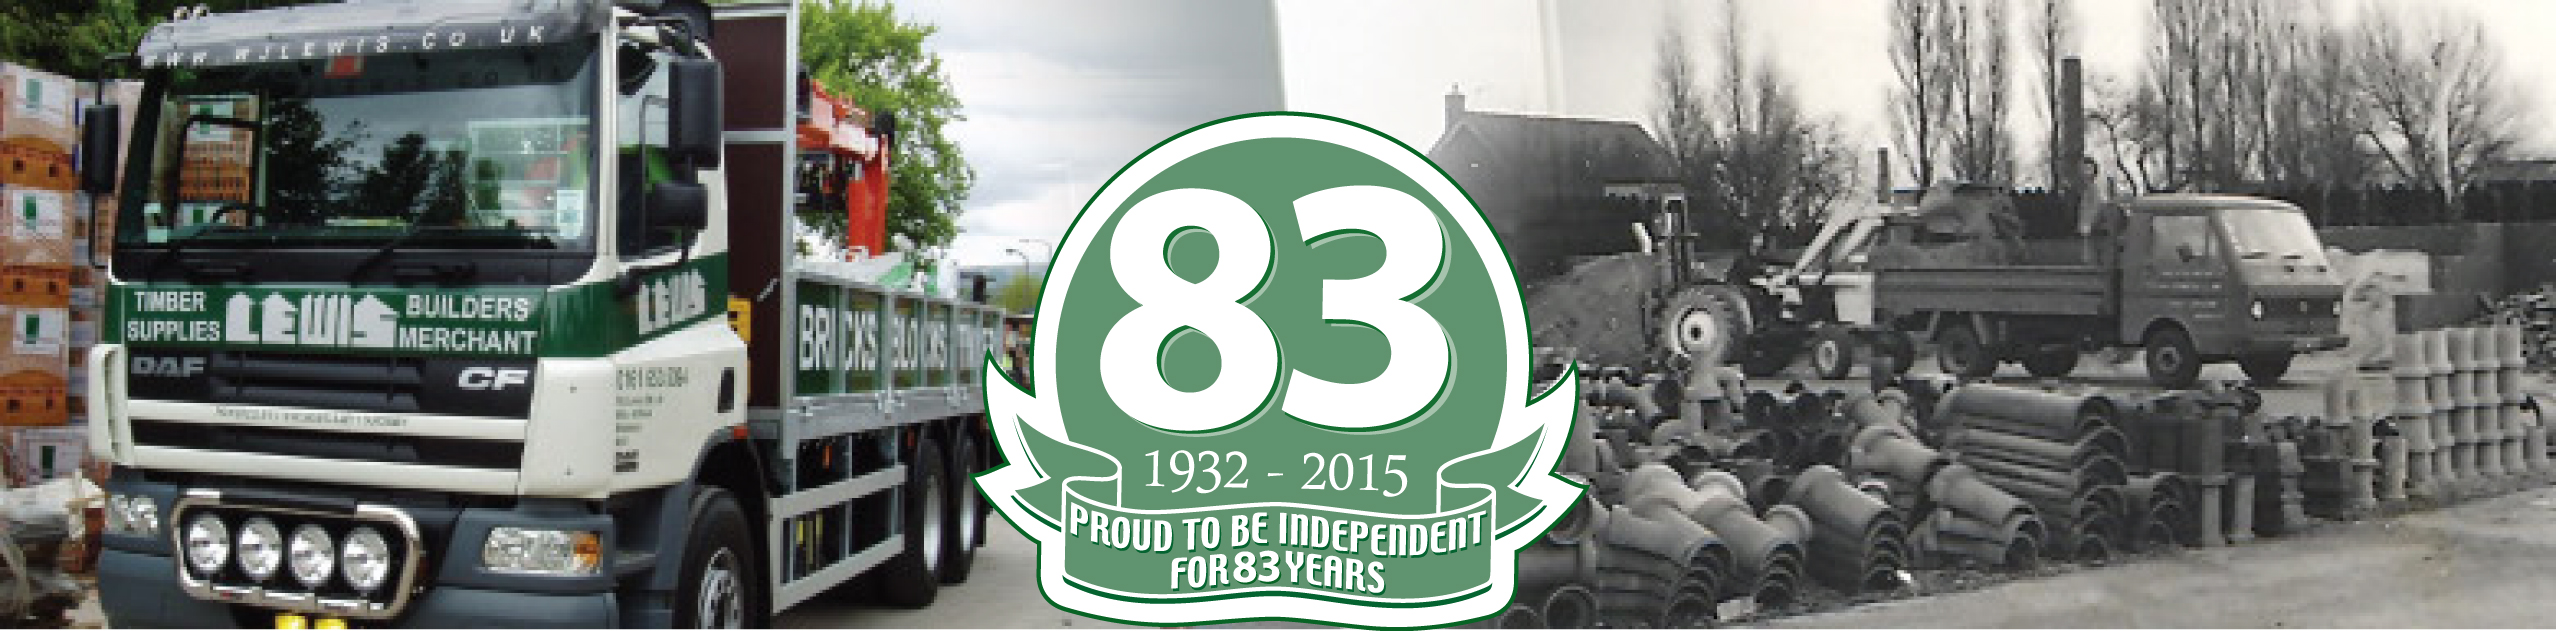 Proud to be independent for 75 Years